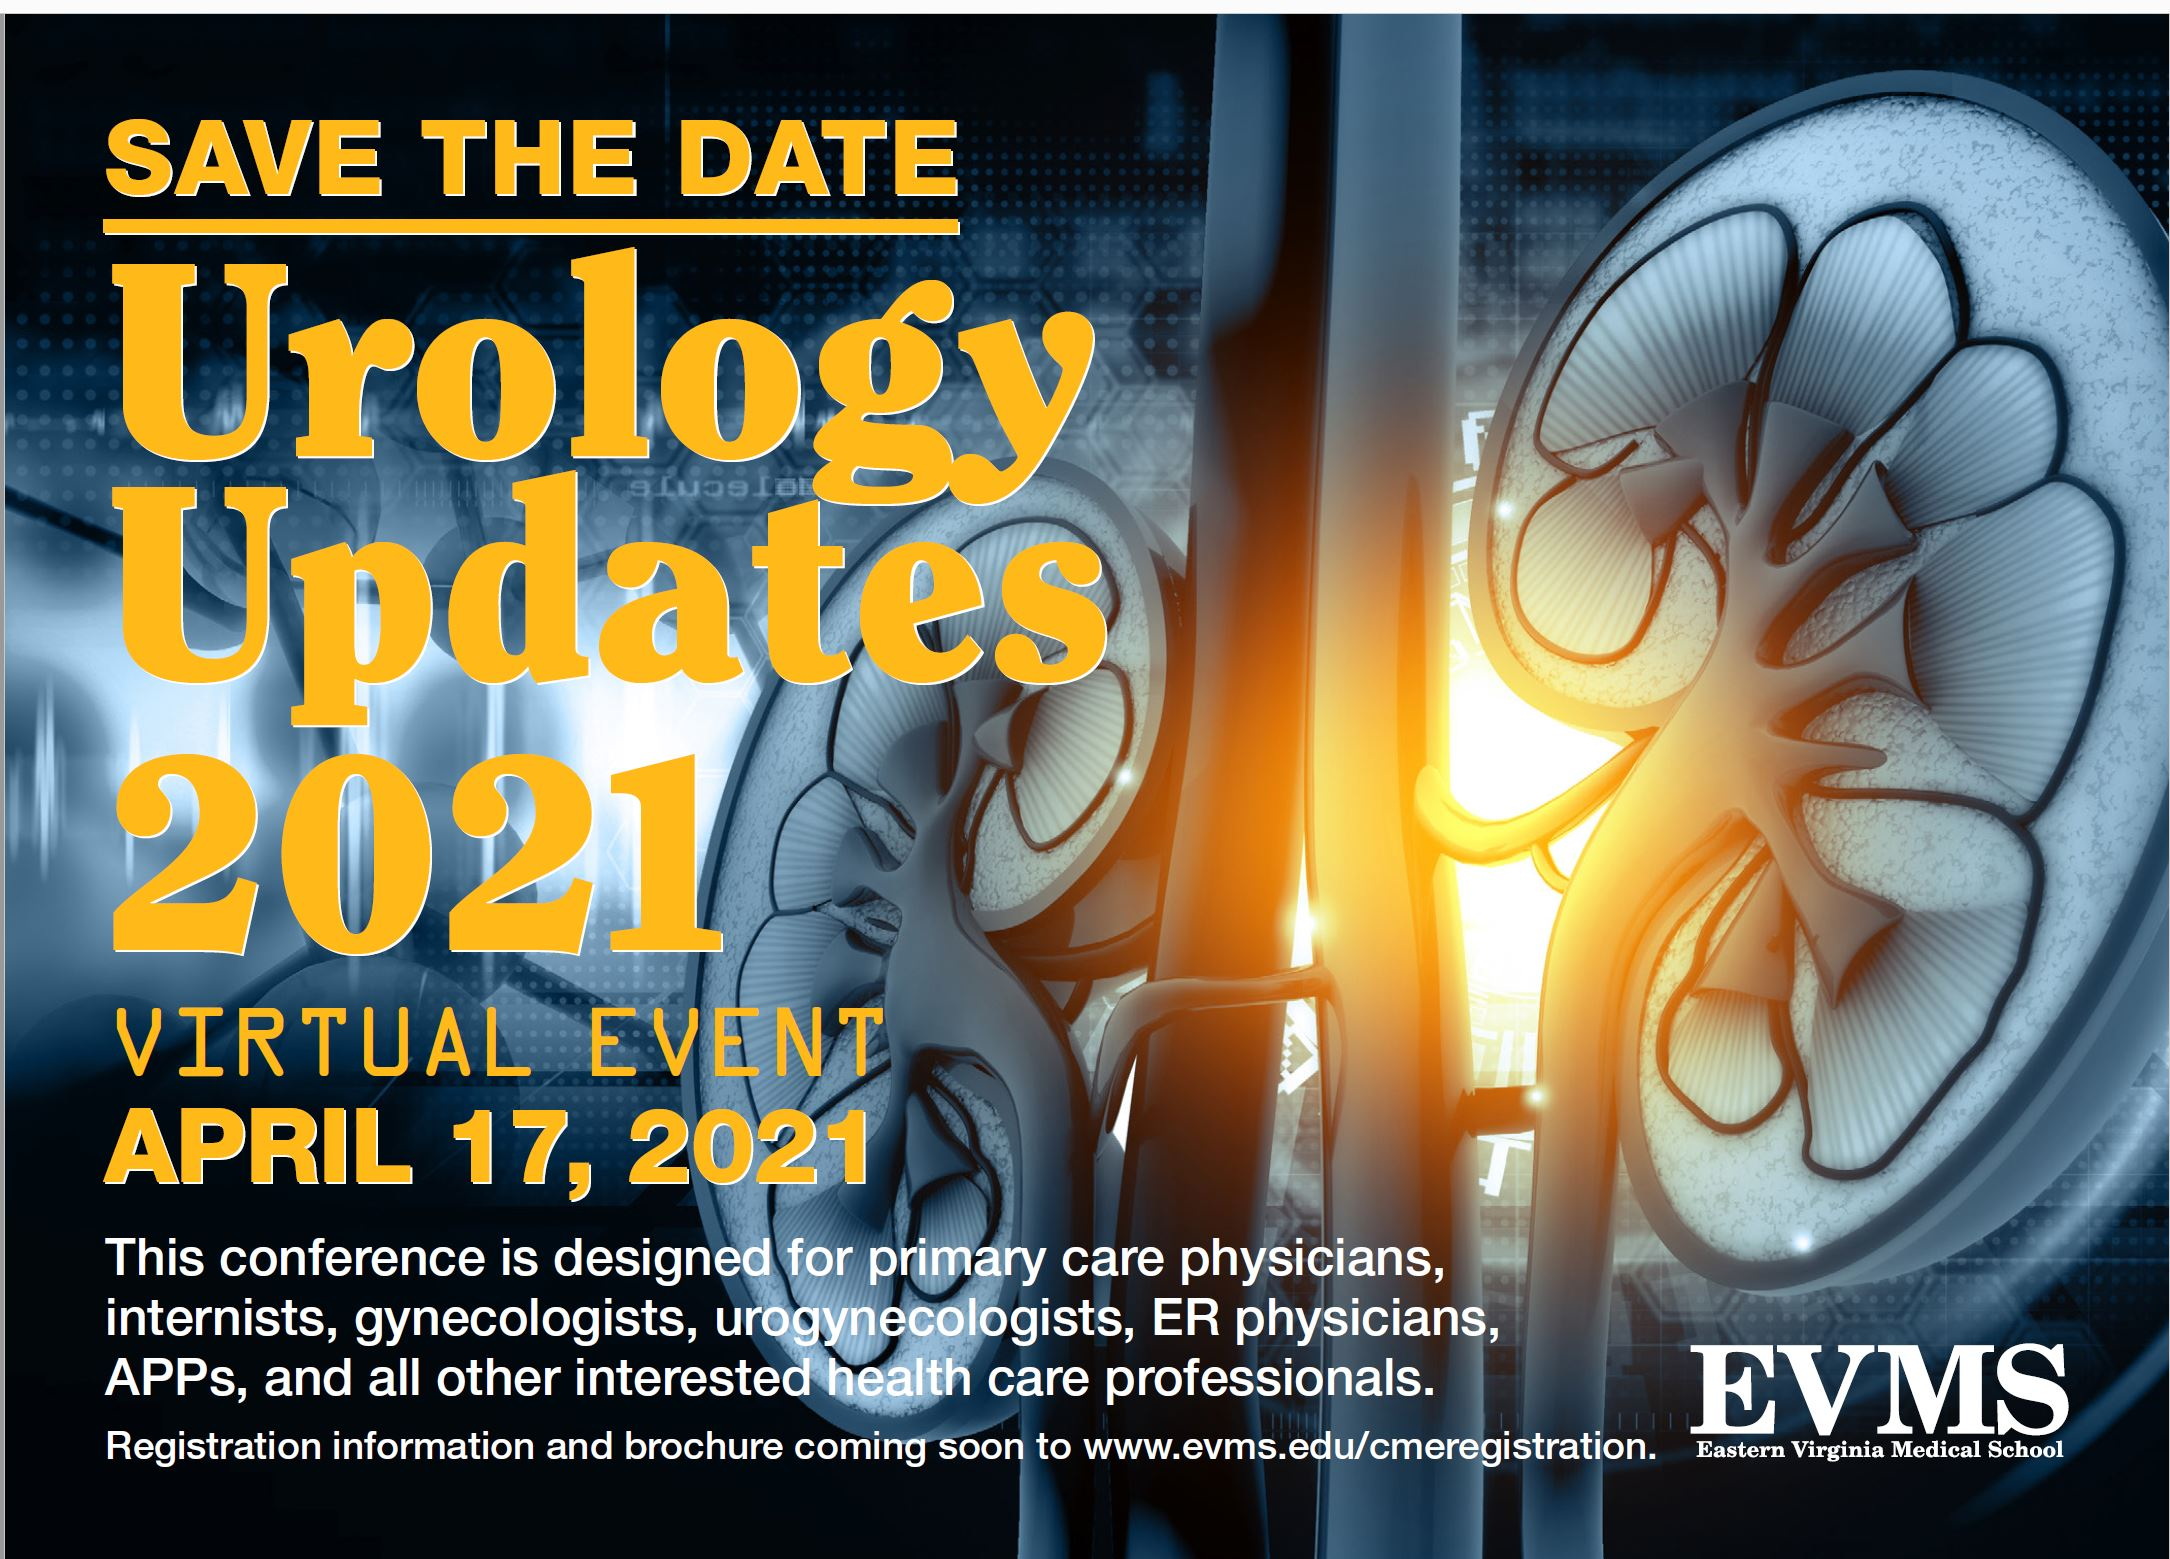 Save The Date - Virtual Event